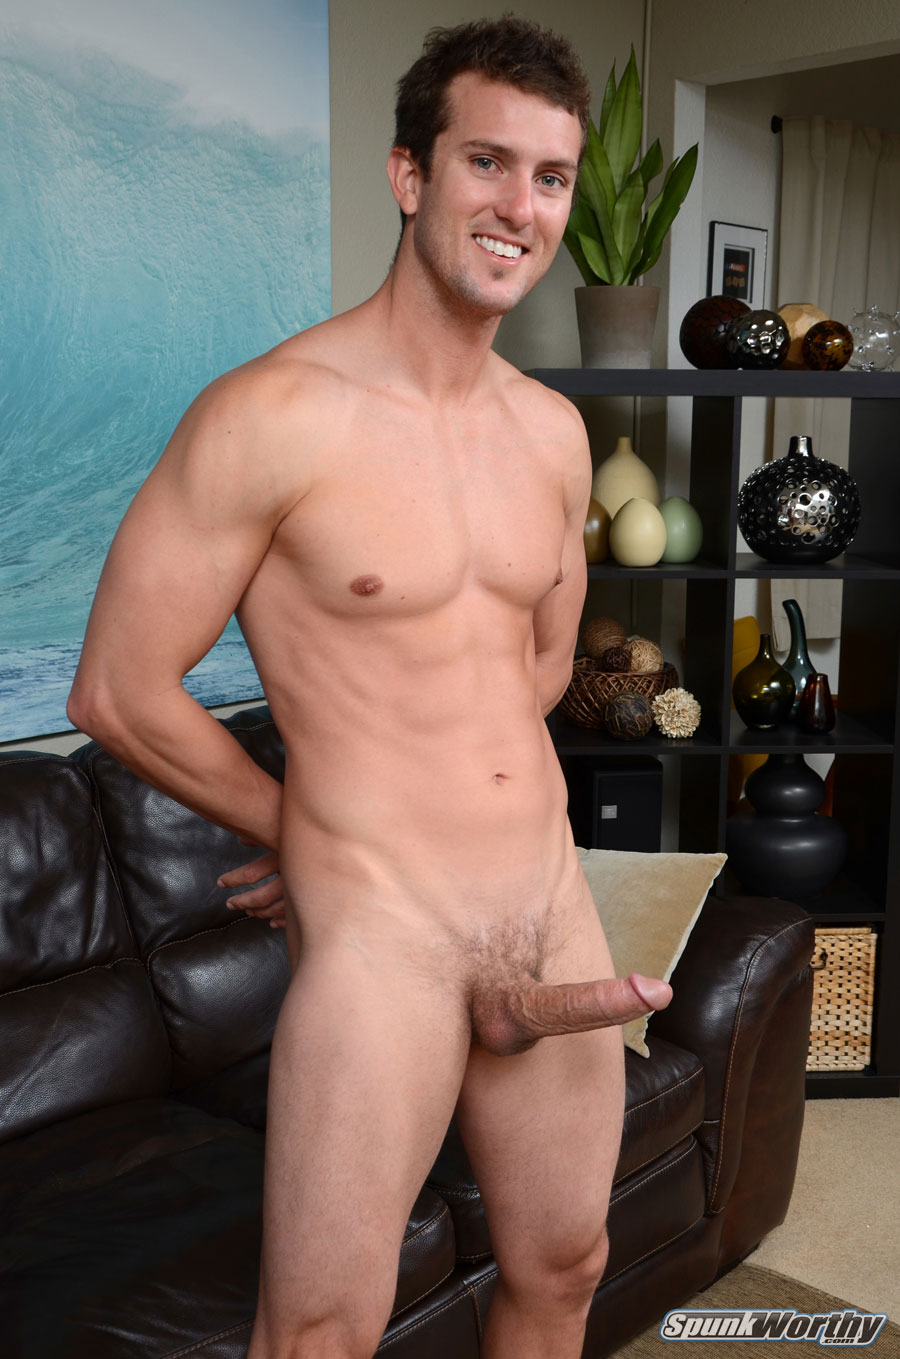 SpunkWorthy-Tommy-Straight-Guy-With-Big-Cock-Handjob-Amateur-Gay-Porn-07 Amateur Straight Surfer Gets His First Handjob From A Guy